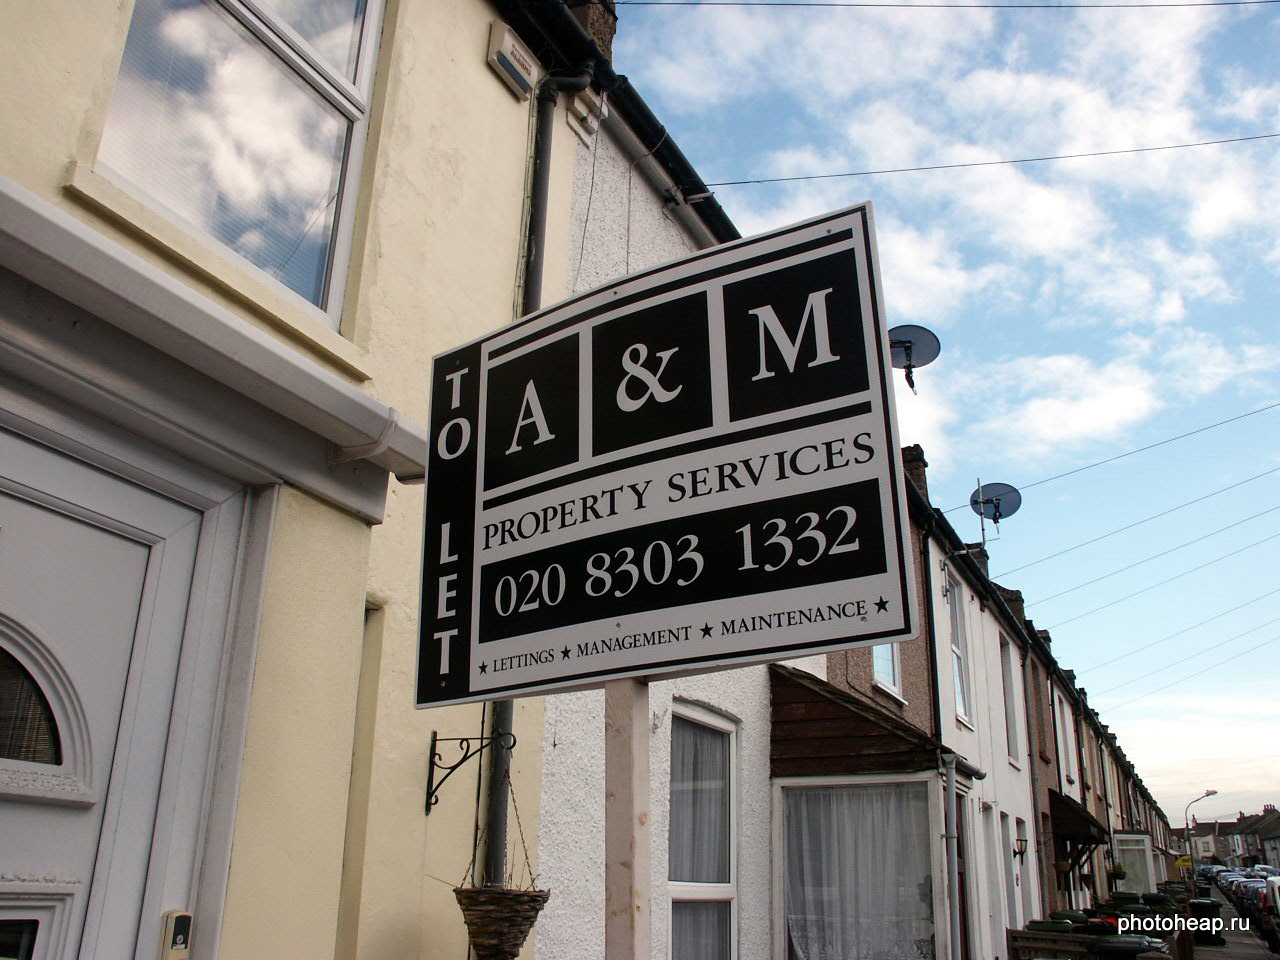 To Let A&M Property Services